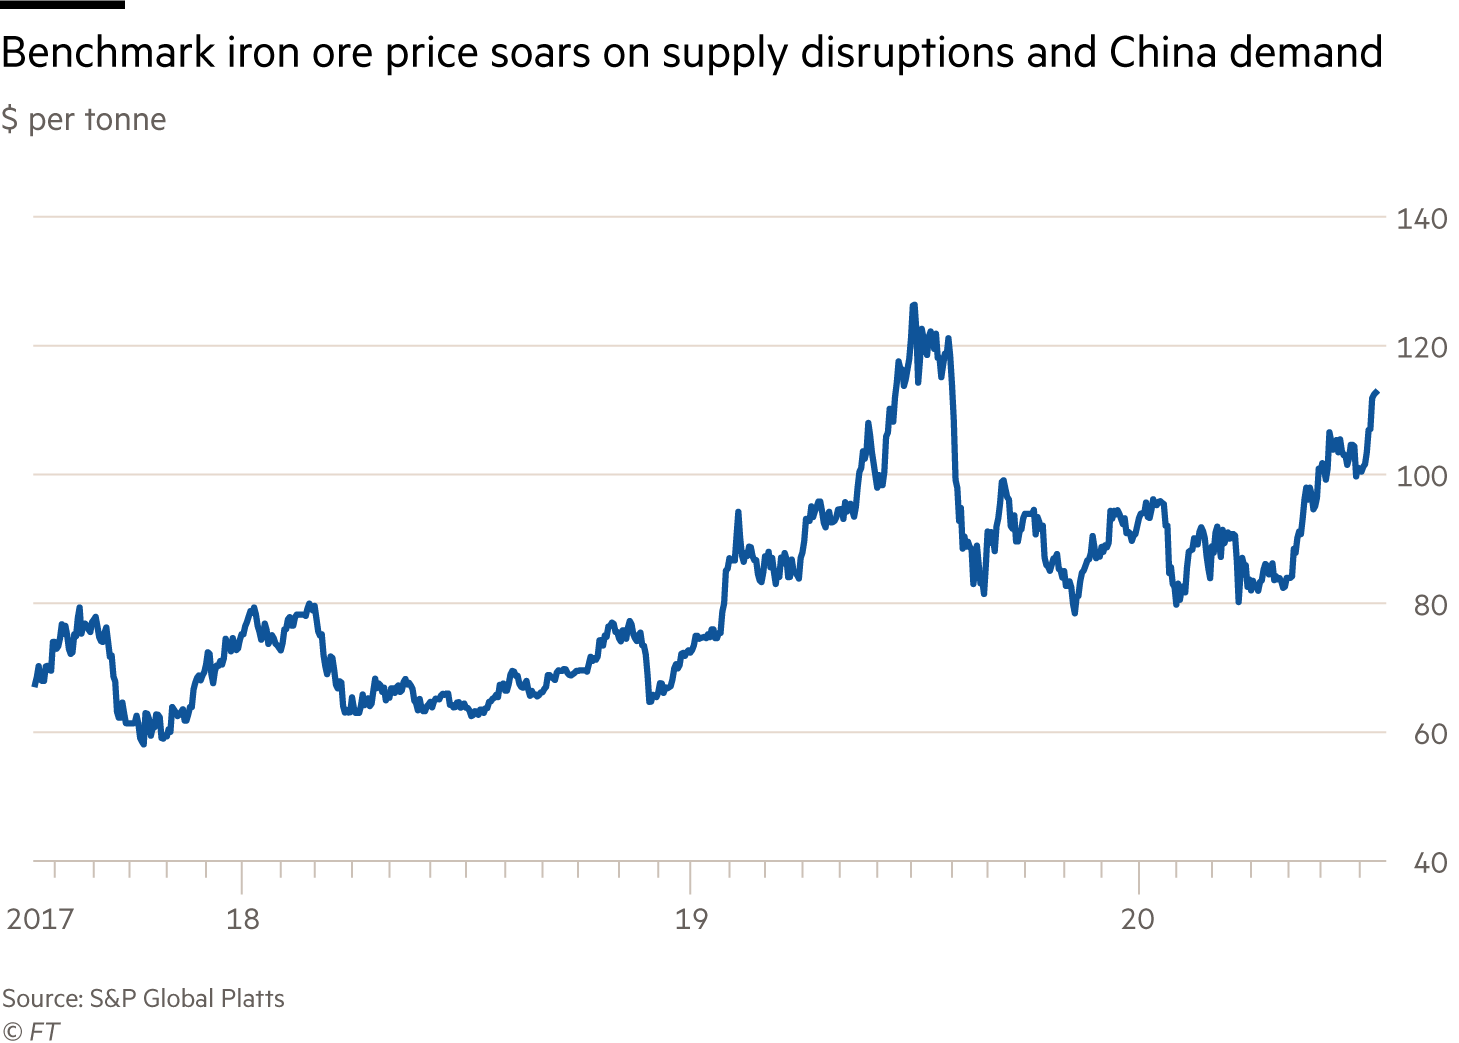 Chart of $ per tonne of iron ore, showing benchmark price is soaring due to Chinese demand and supply disruptions